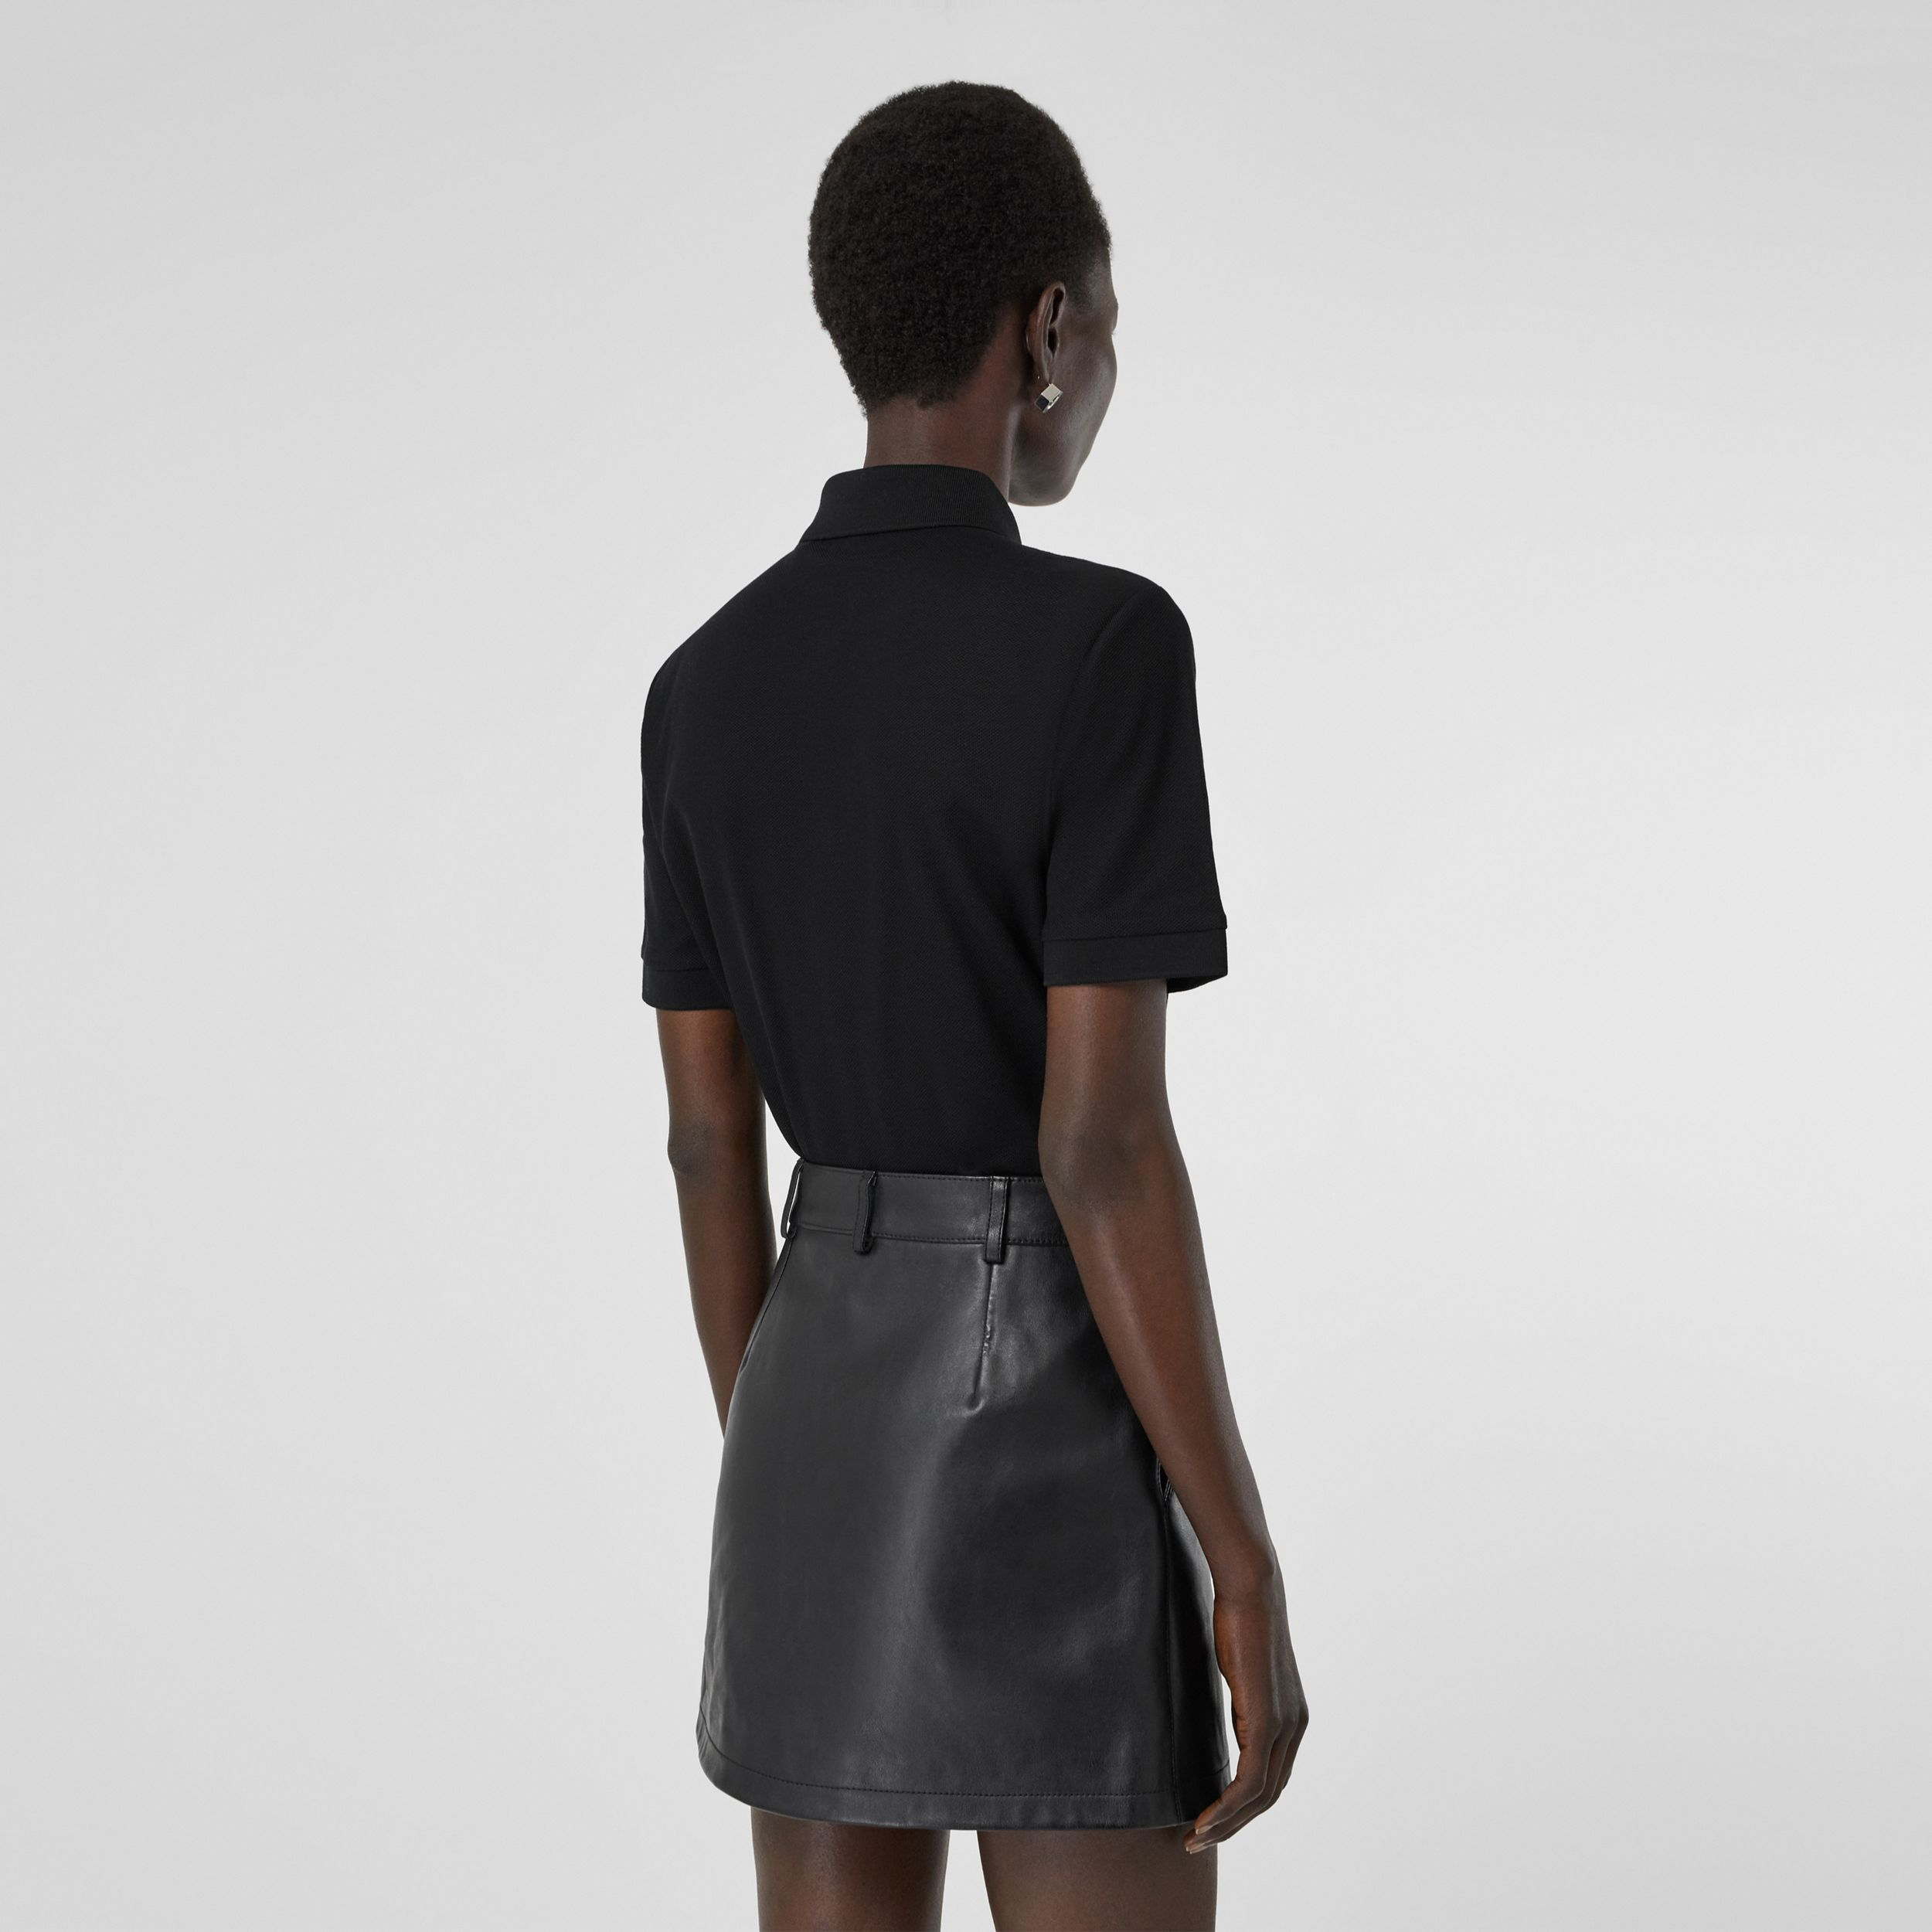 Monogram Motif Cotton Piqué Polo Shirt in Black - Women | Burberry Canada - 3